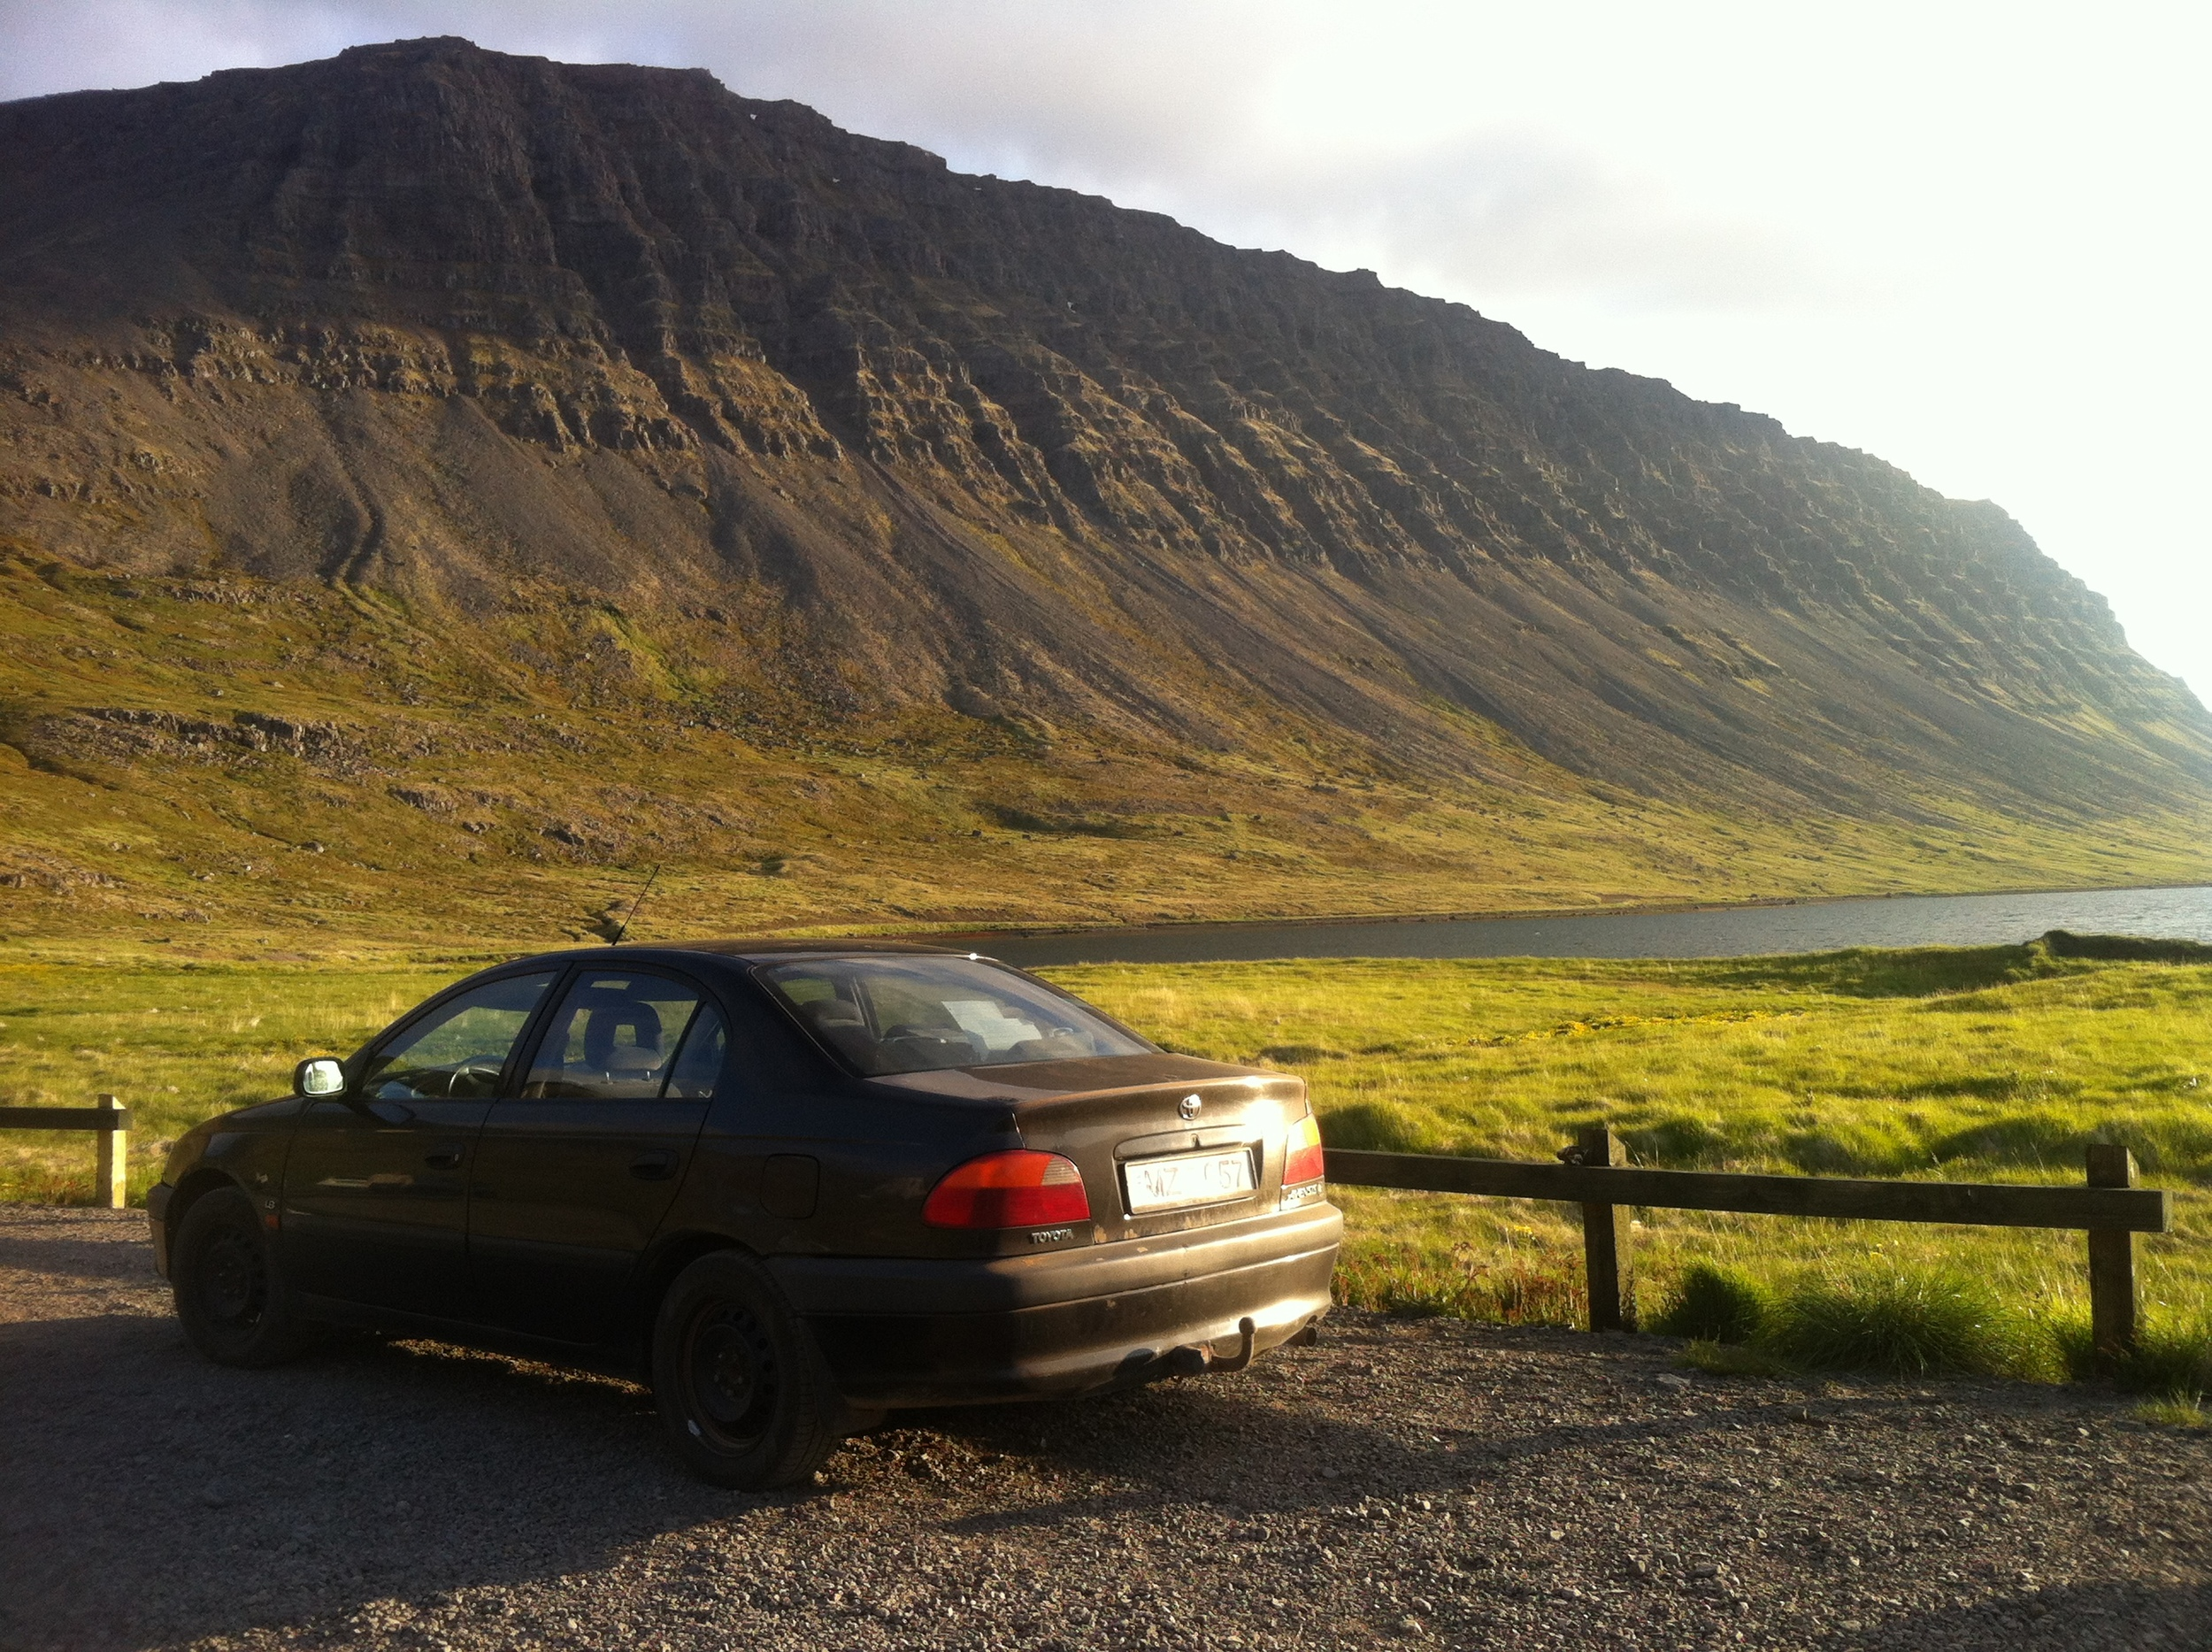 Our Toyota Avensis, 1999 resting at the bottom of the fjord.